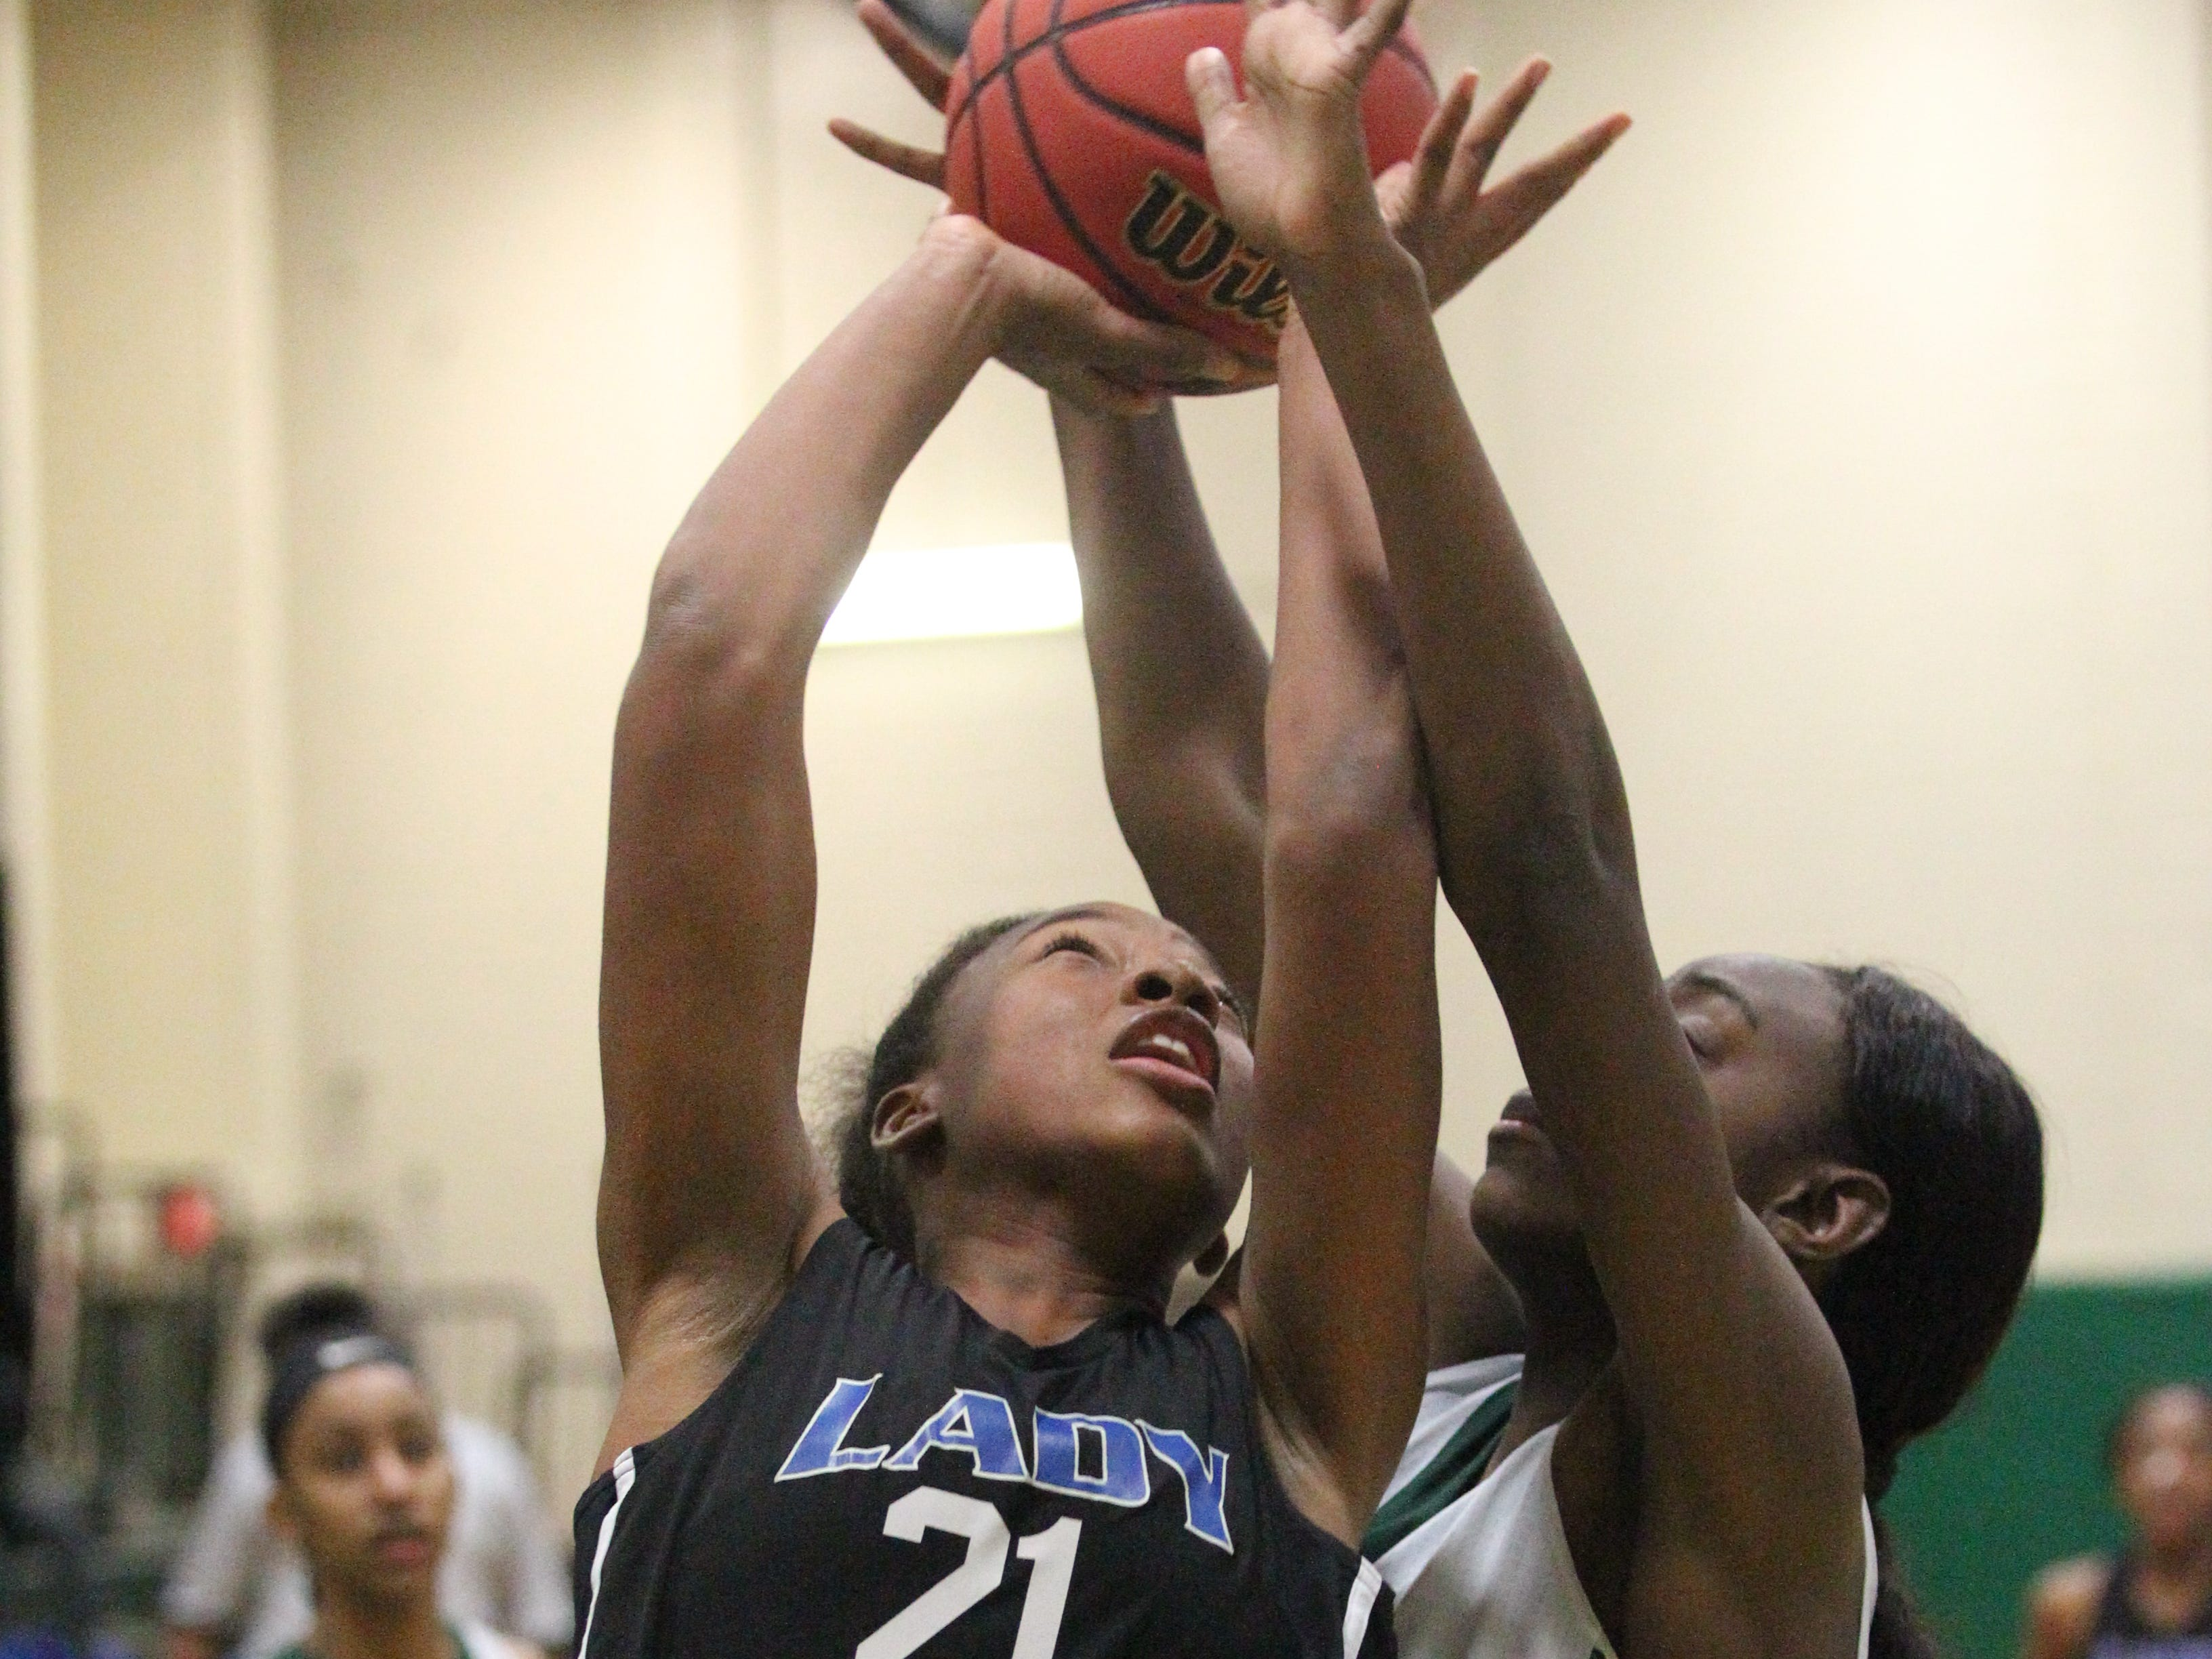 Godby's Essence Olivier goes up for a rebound against Lincoln's Ziare Reynolds as Lincoln's girls basketball team beat Godby 67-32 on Jan. 29, 2019.